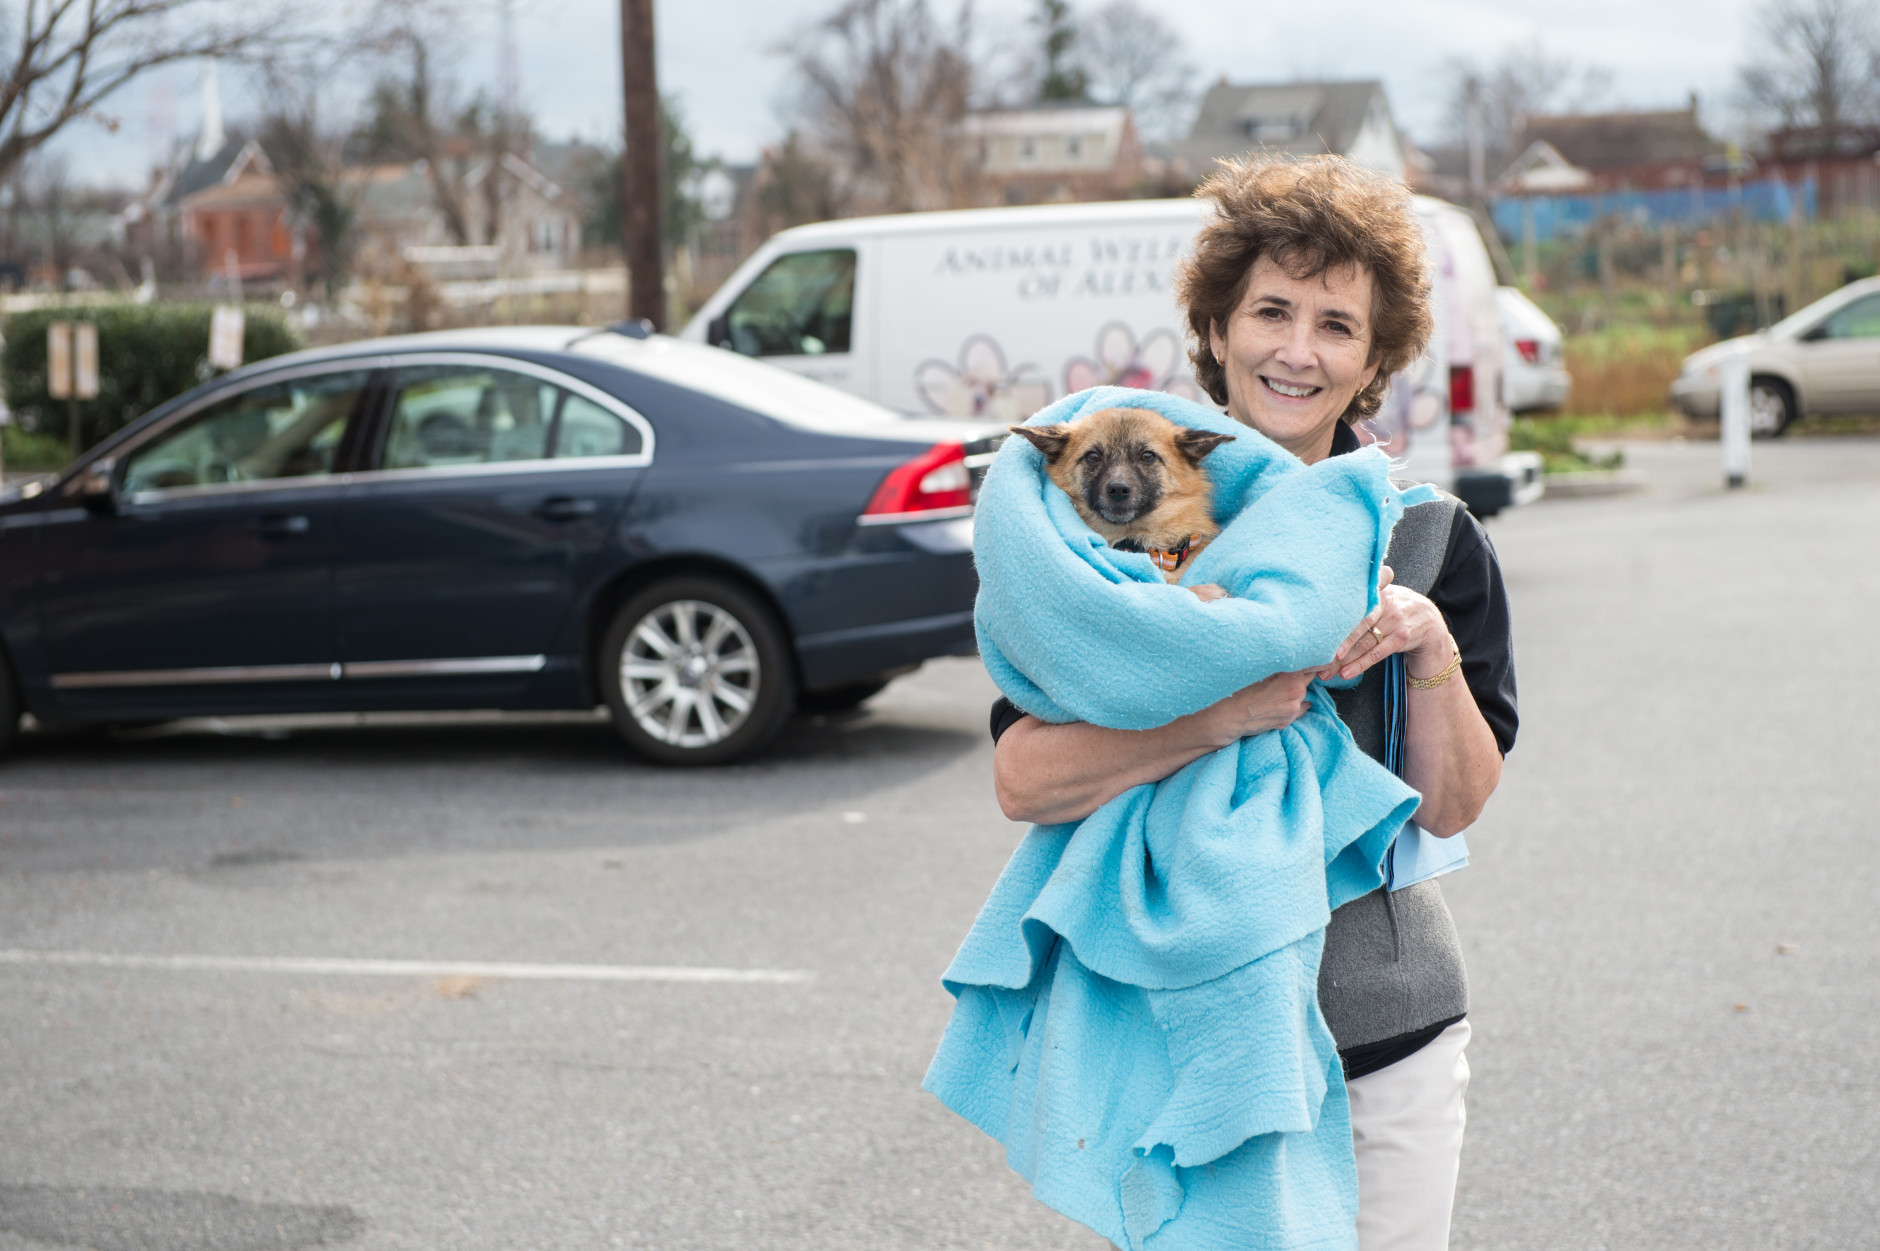 Dogs that arrived over the weekend from a dog meat farm in South Korea are picked up at the Washington Animal Rescue League by area shelters.  Here, a staff member of the Animal Welfare League of Arlington carries Gabriel to their vehicle for transport to the shelter. (Courtesy Meredith Lee/The HSUS)